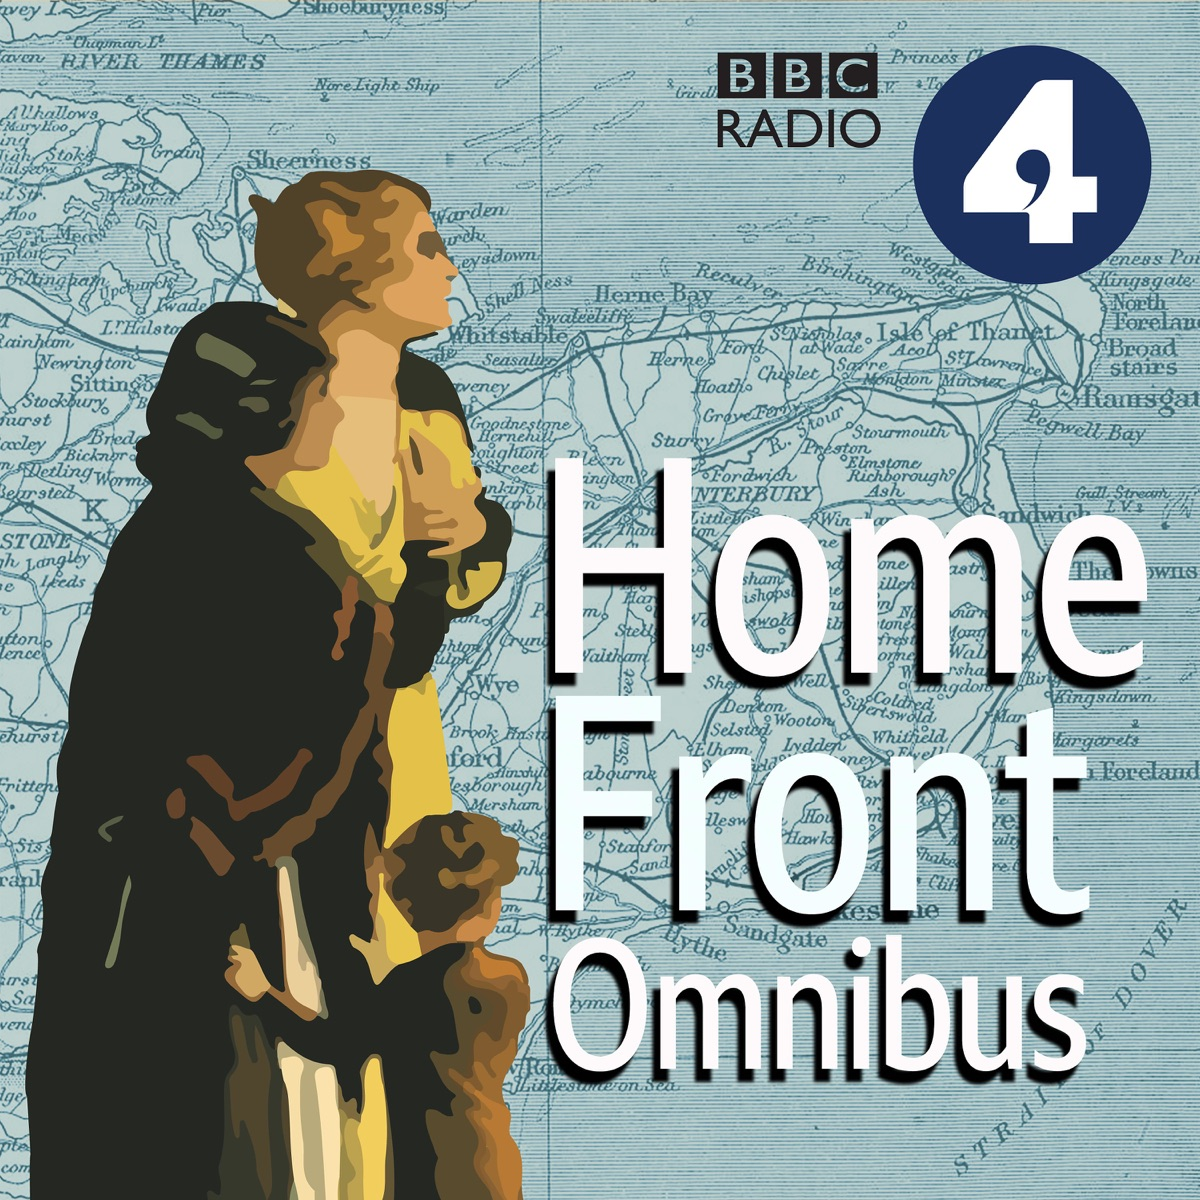 Home Front - Omnibus returns on 22 June